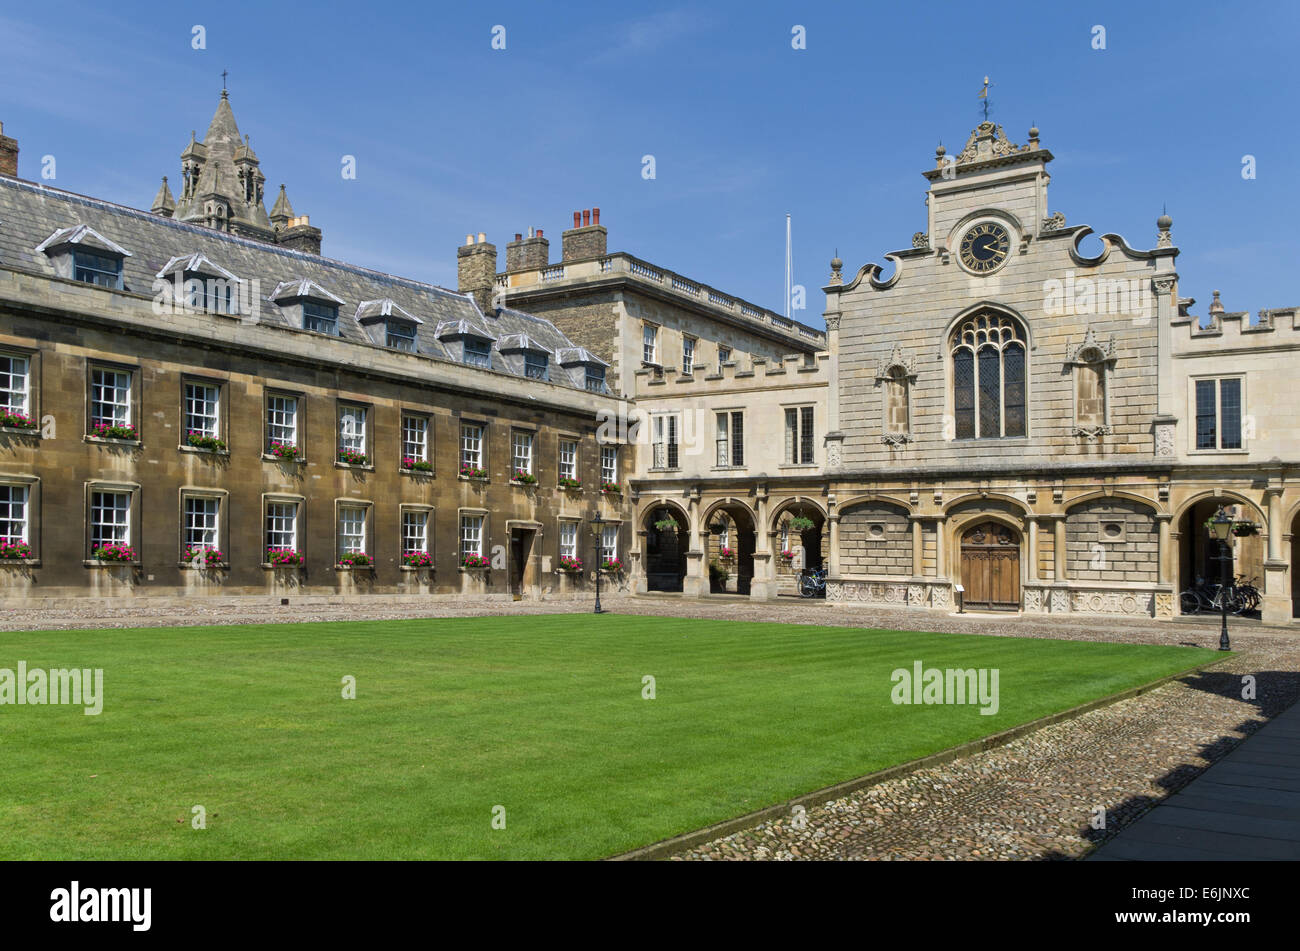 Exterior of Peterhouse College, Cambridge, UK; the oldest college of the University. - Stock Image